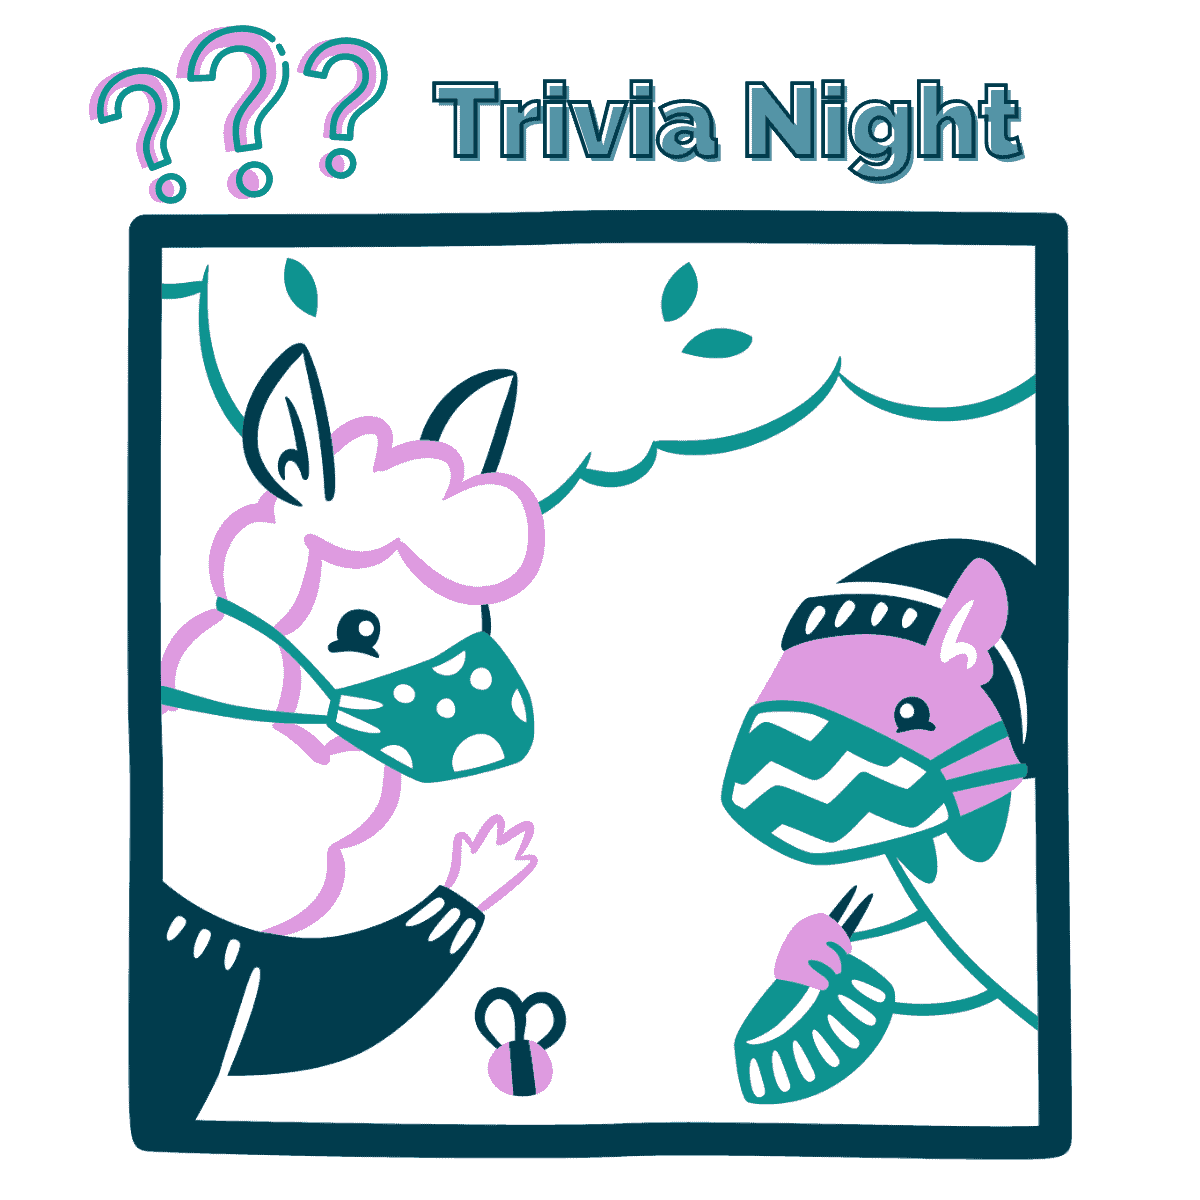 An illustration of a masked alpaca and squirrel with question marks and the words Trivia Night.